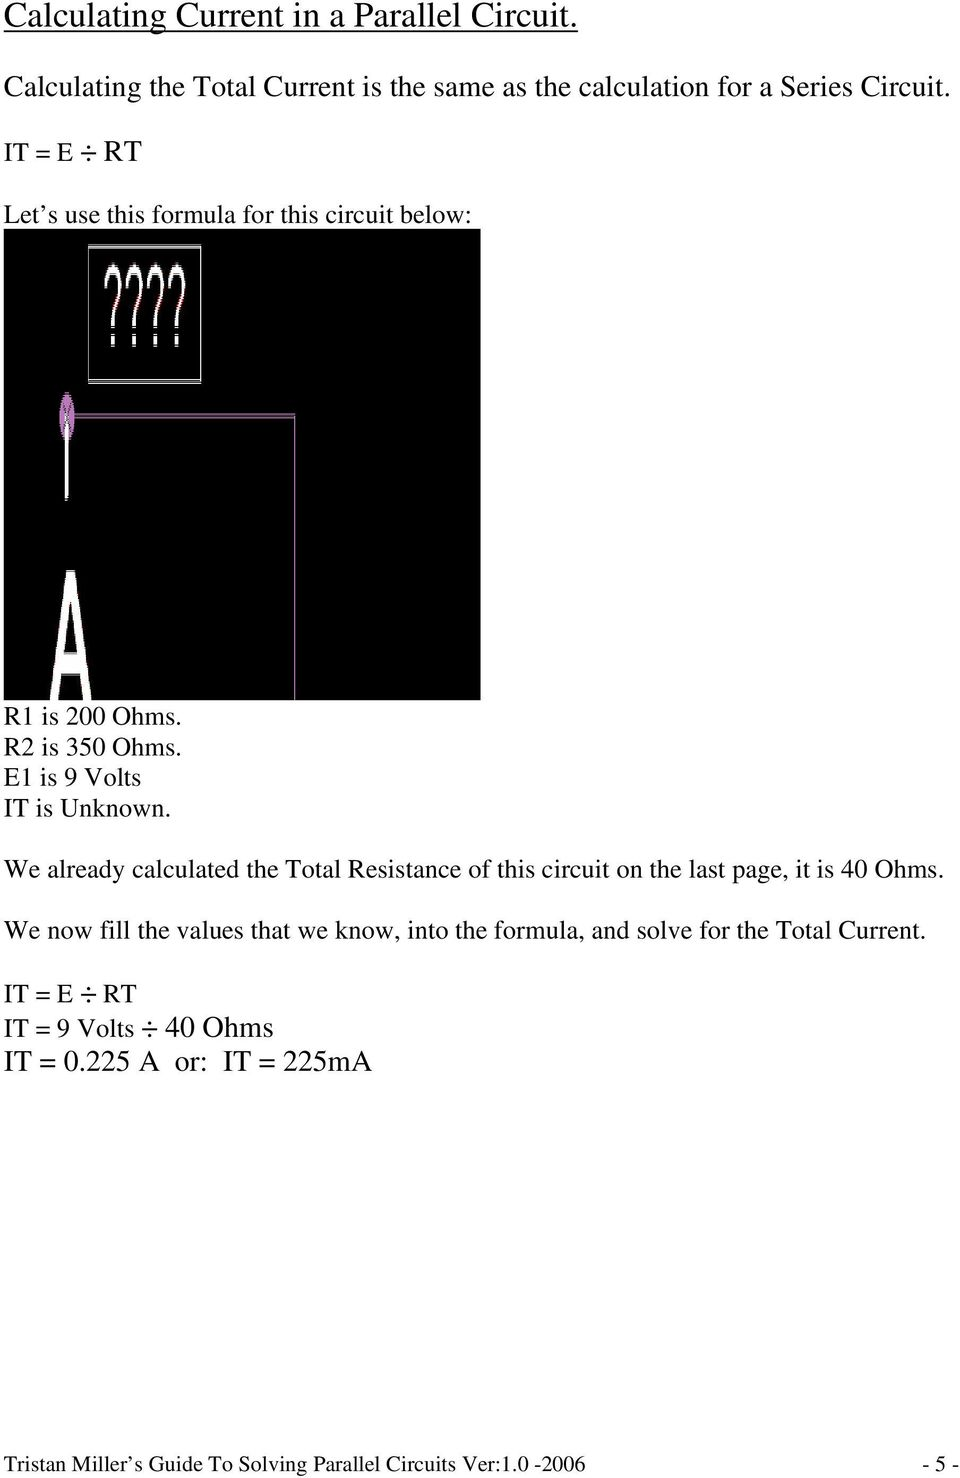 Tristan S Guide To Solving Parallel Circuits Version 10 Written For The Circuit Shown Below Calculate Total Resistance We Already Calculated Of This On Last Page It Is